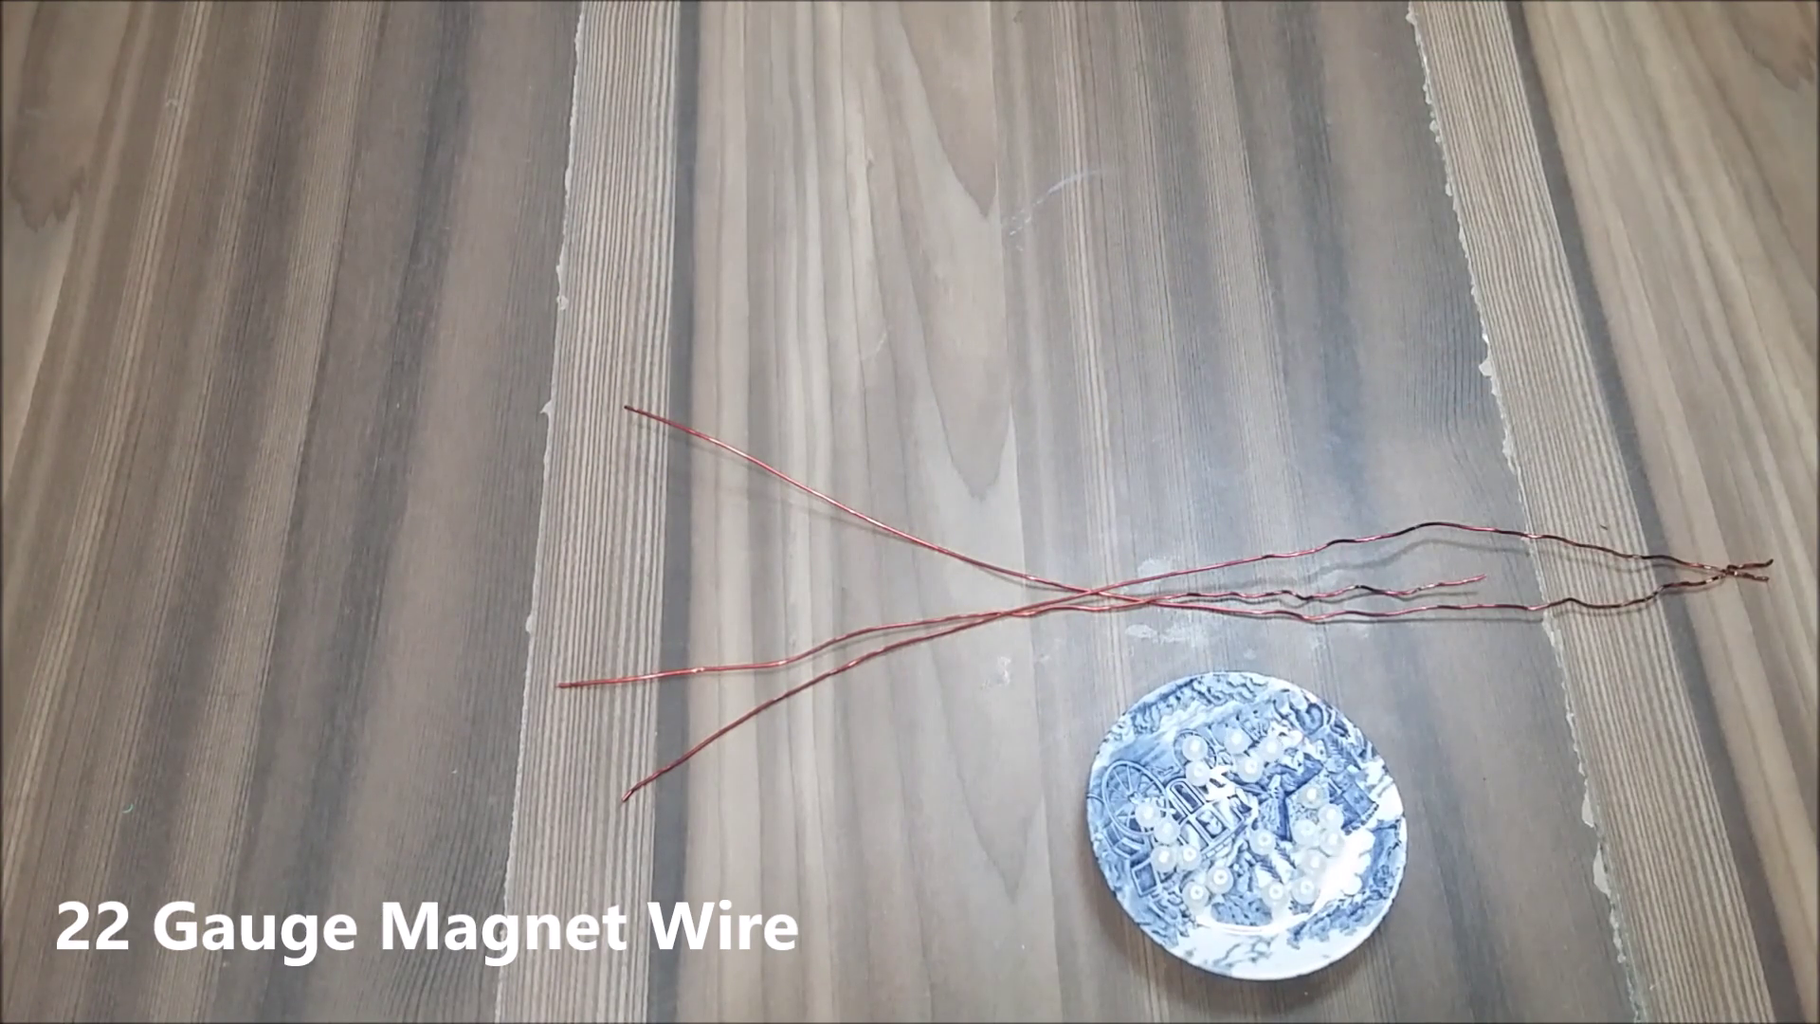 Coloring and 22 Gauge Magnet Wire